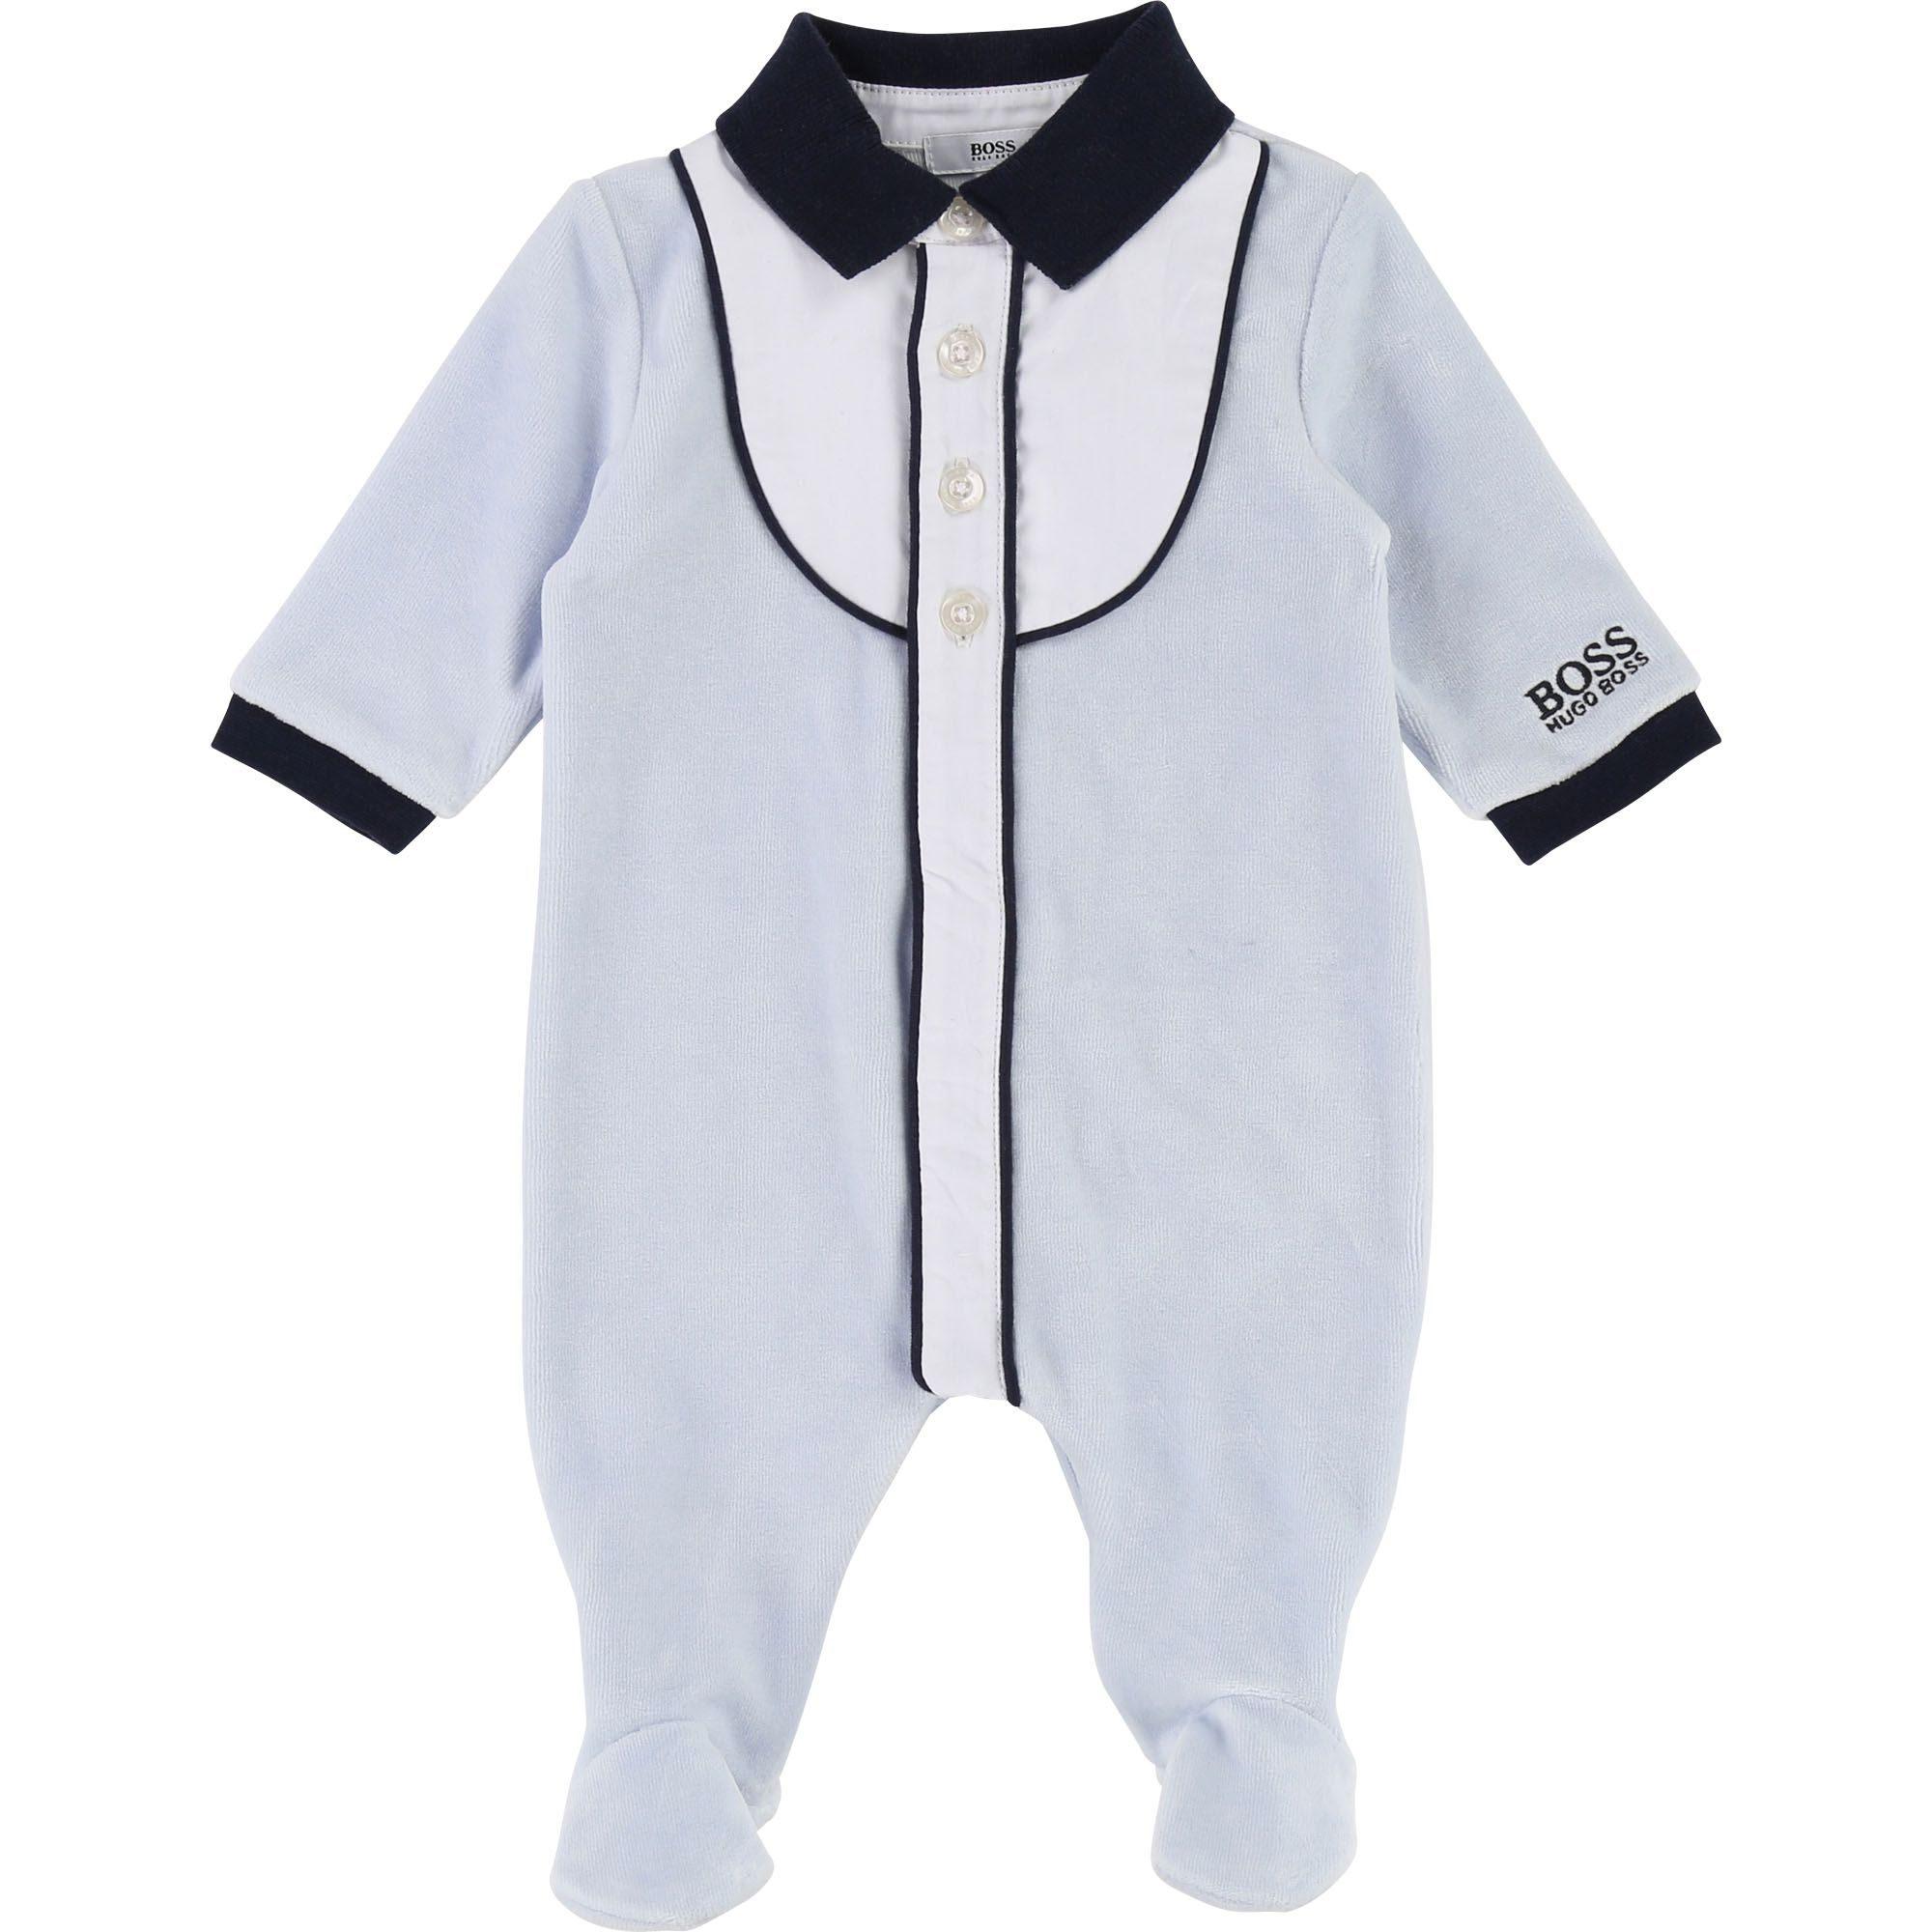 Rabatt Factory Outlets neue auswahl Pin by Nguyễn Như on Clothes length | Baby boy pajamas, Hugo ...